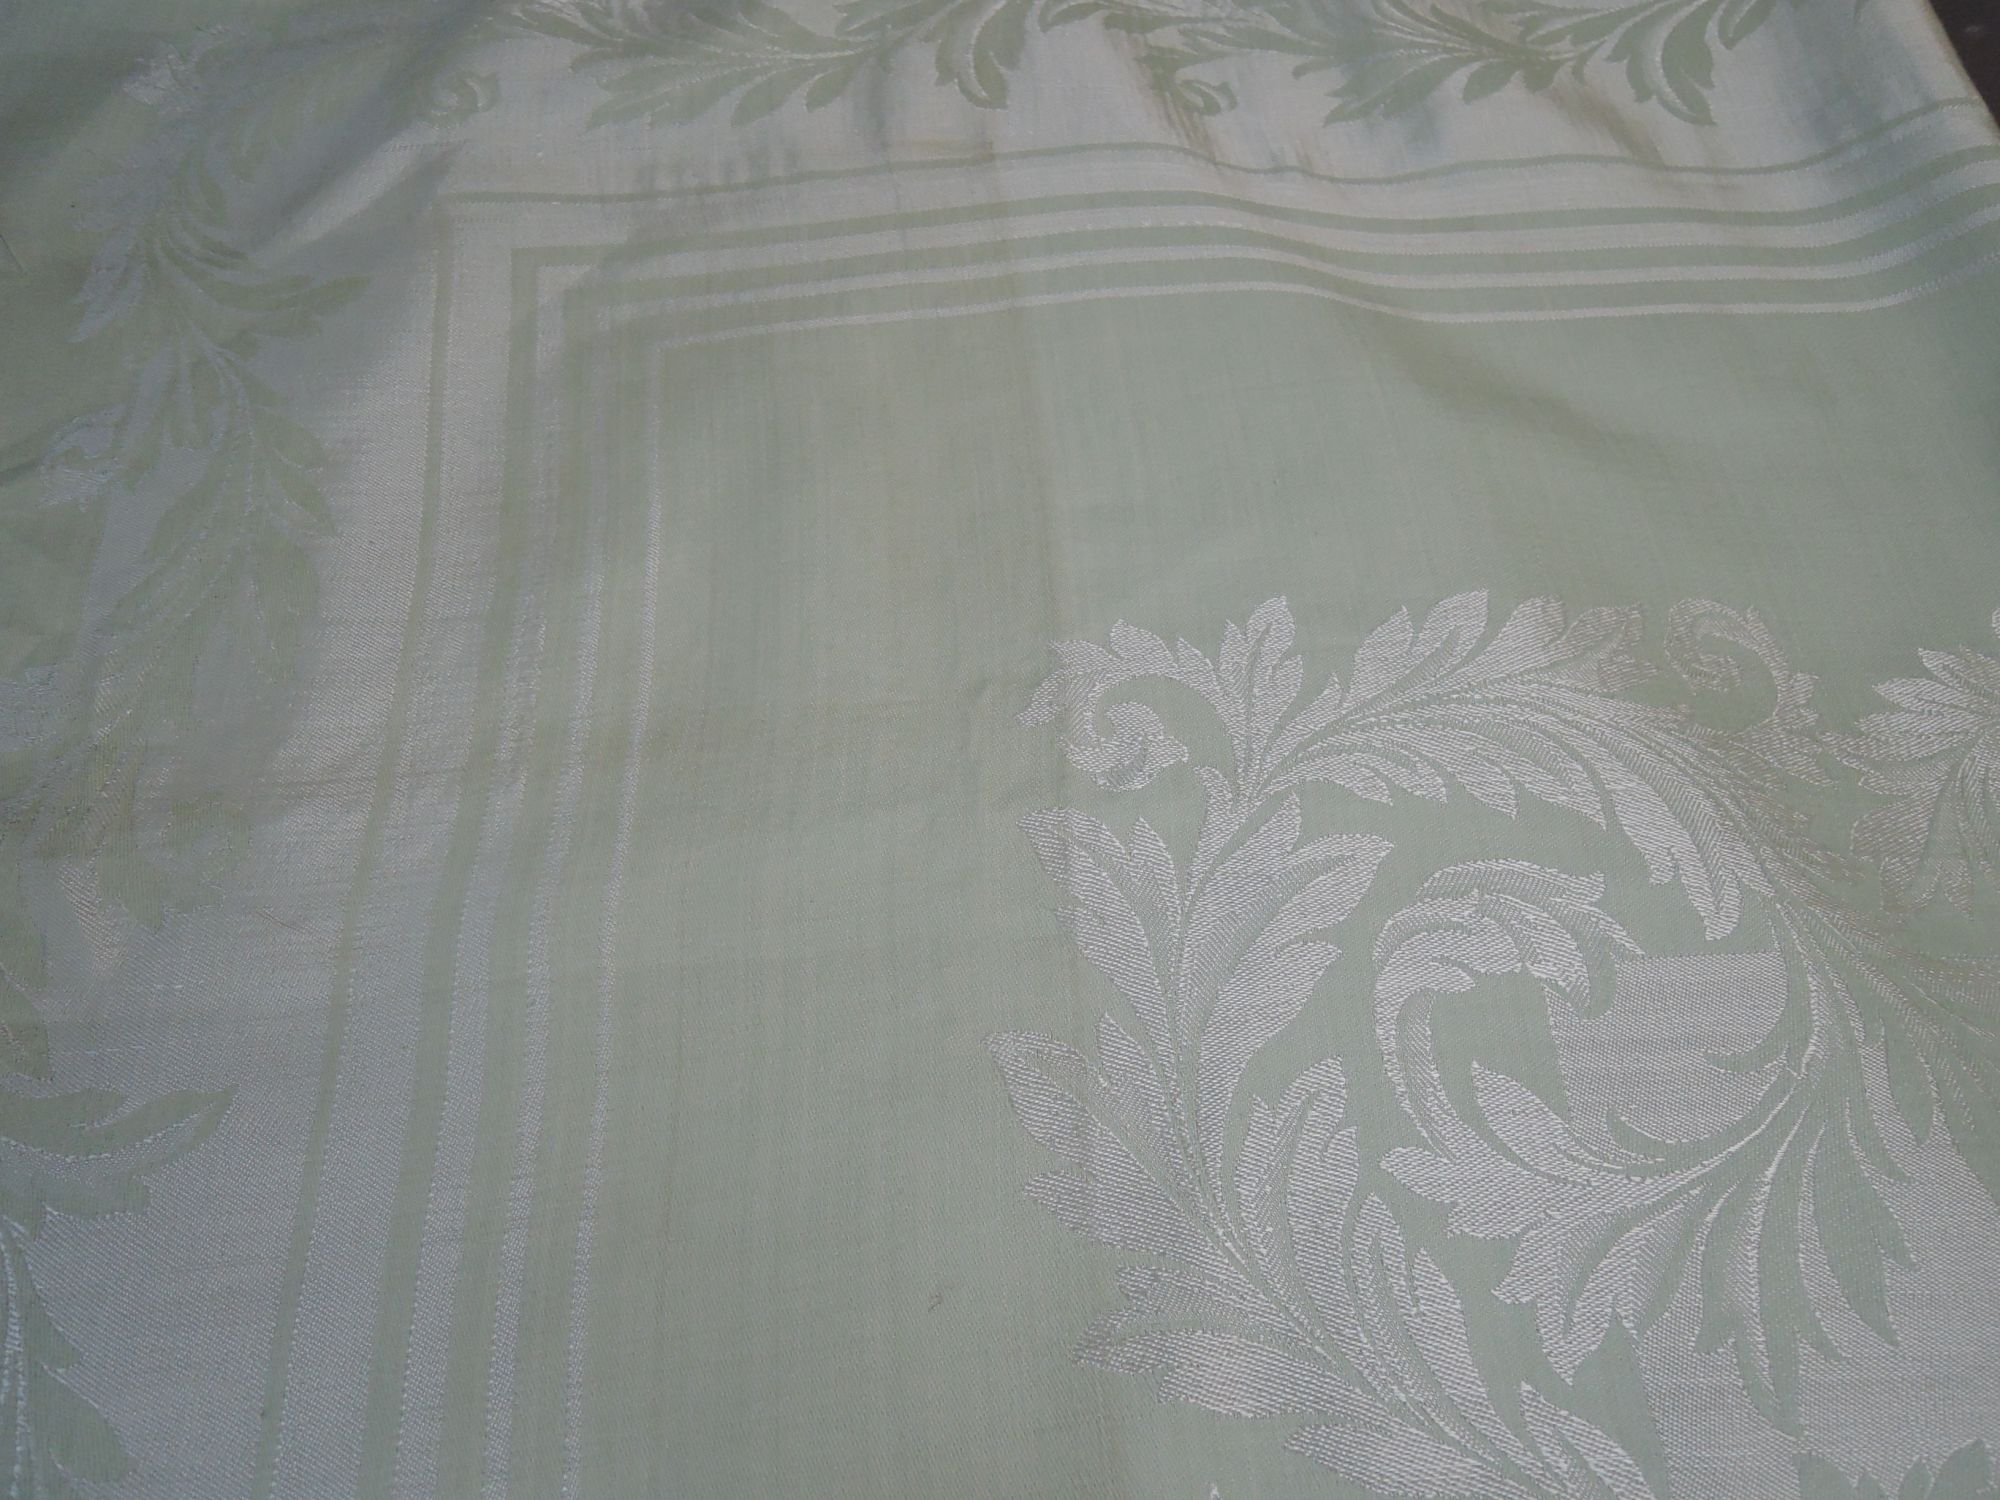 Vintage Mint Green Damask Tablecloth, 1940s 50 x 49 inches, Made in Belgium